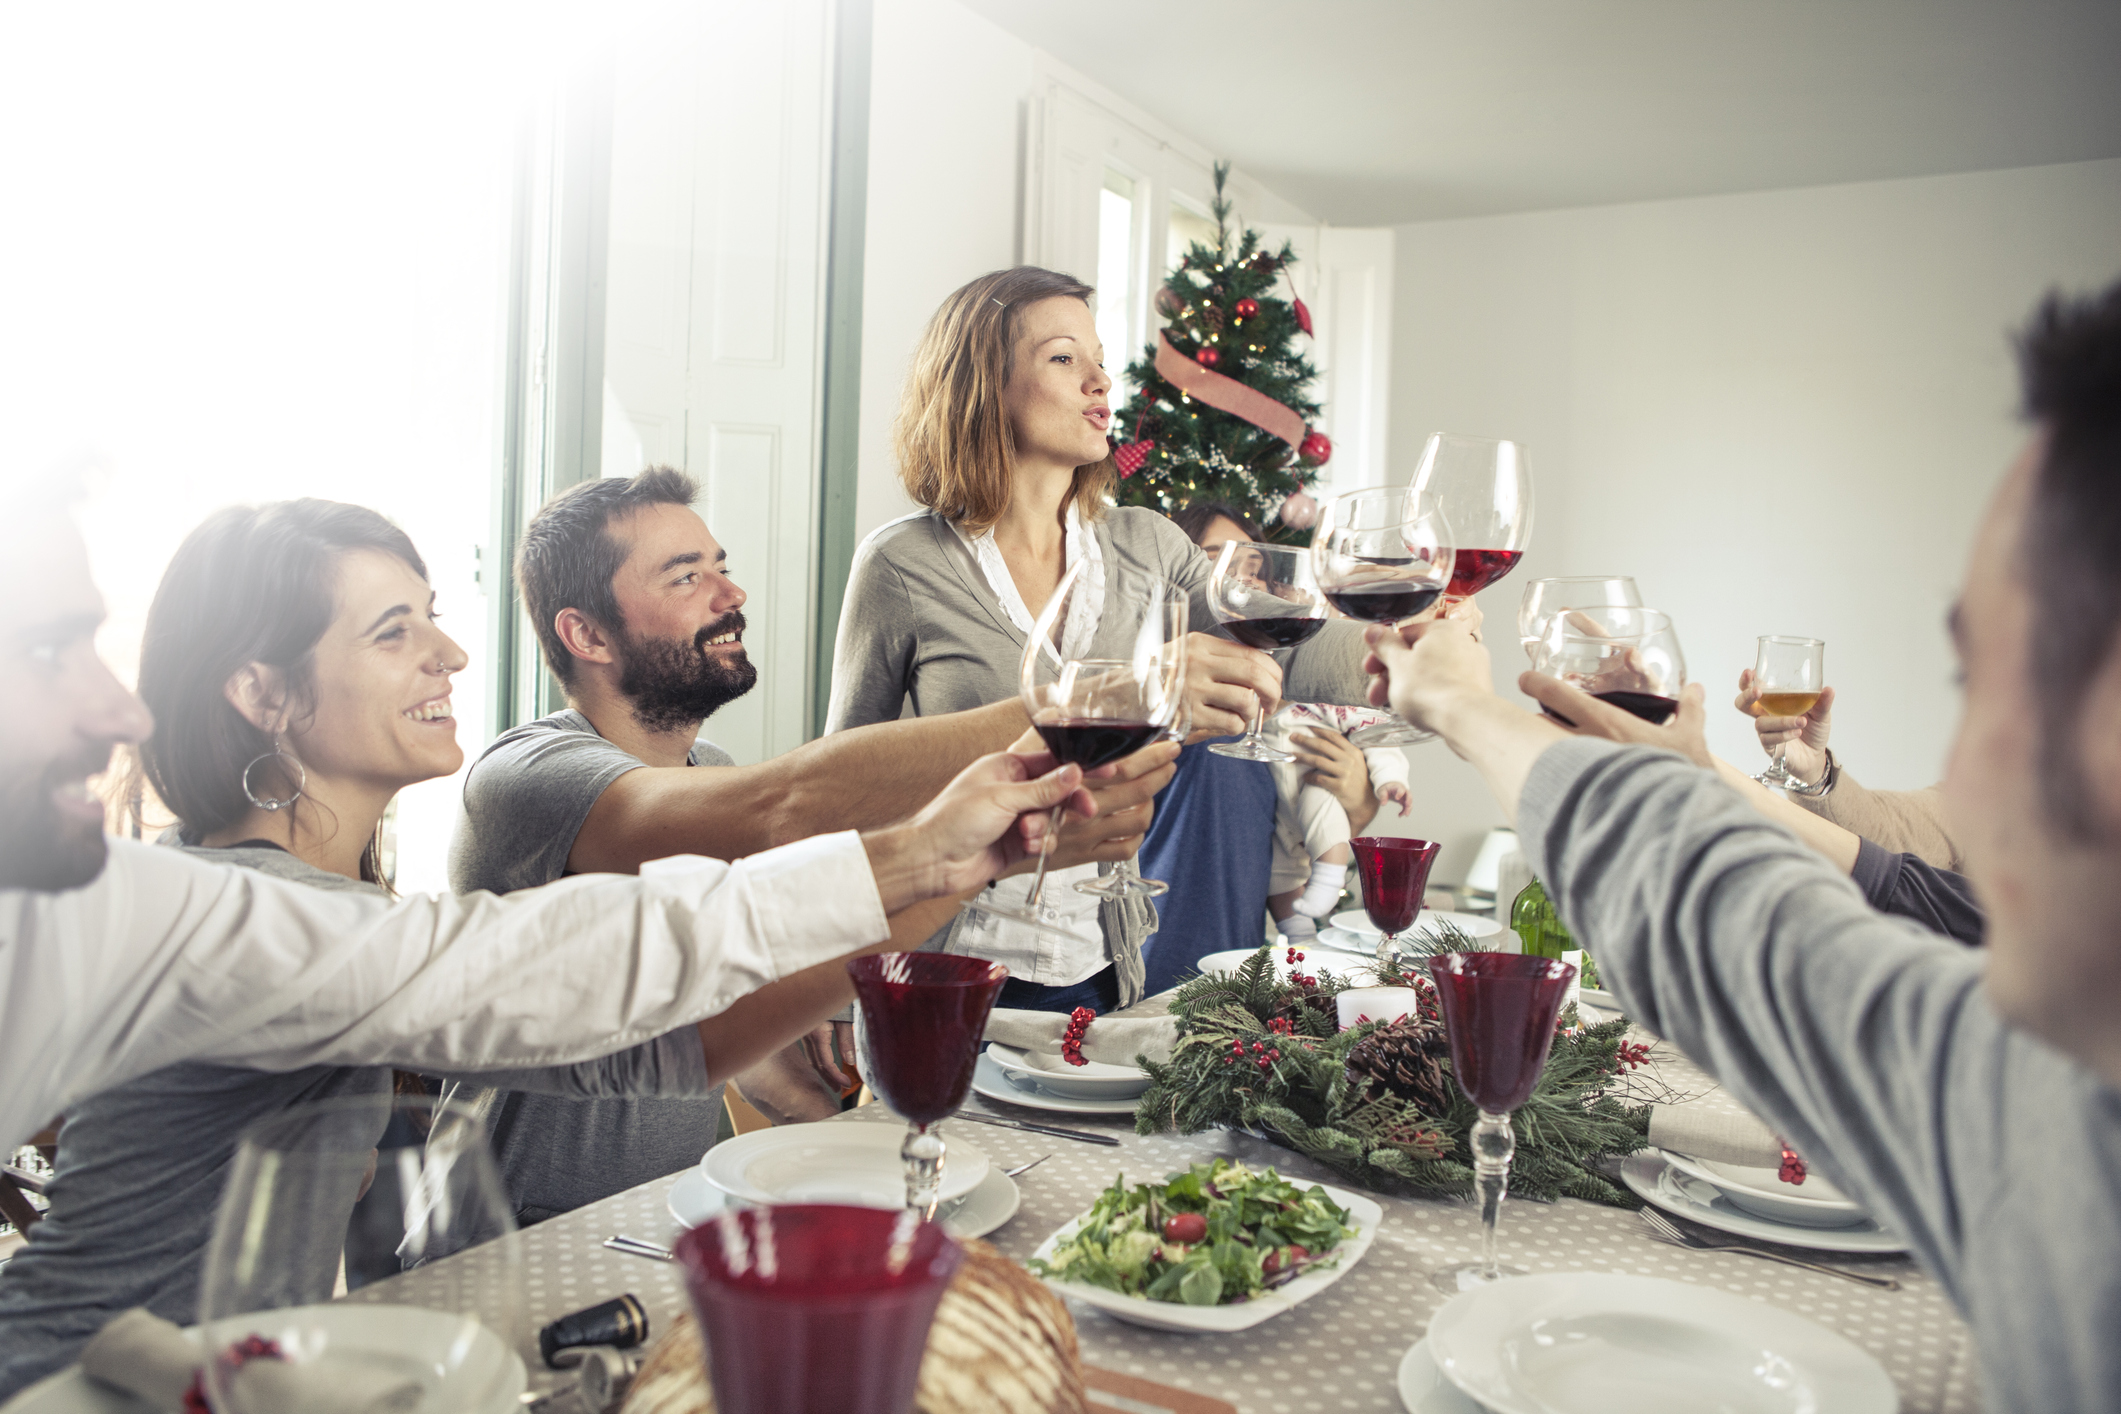 Friends toasting at a Christmas dinner around the table.